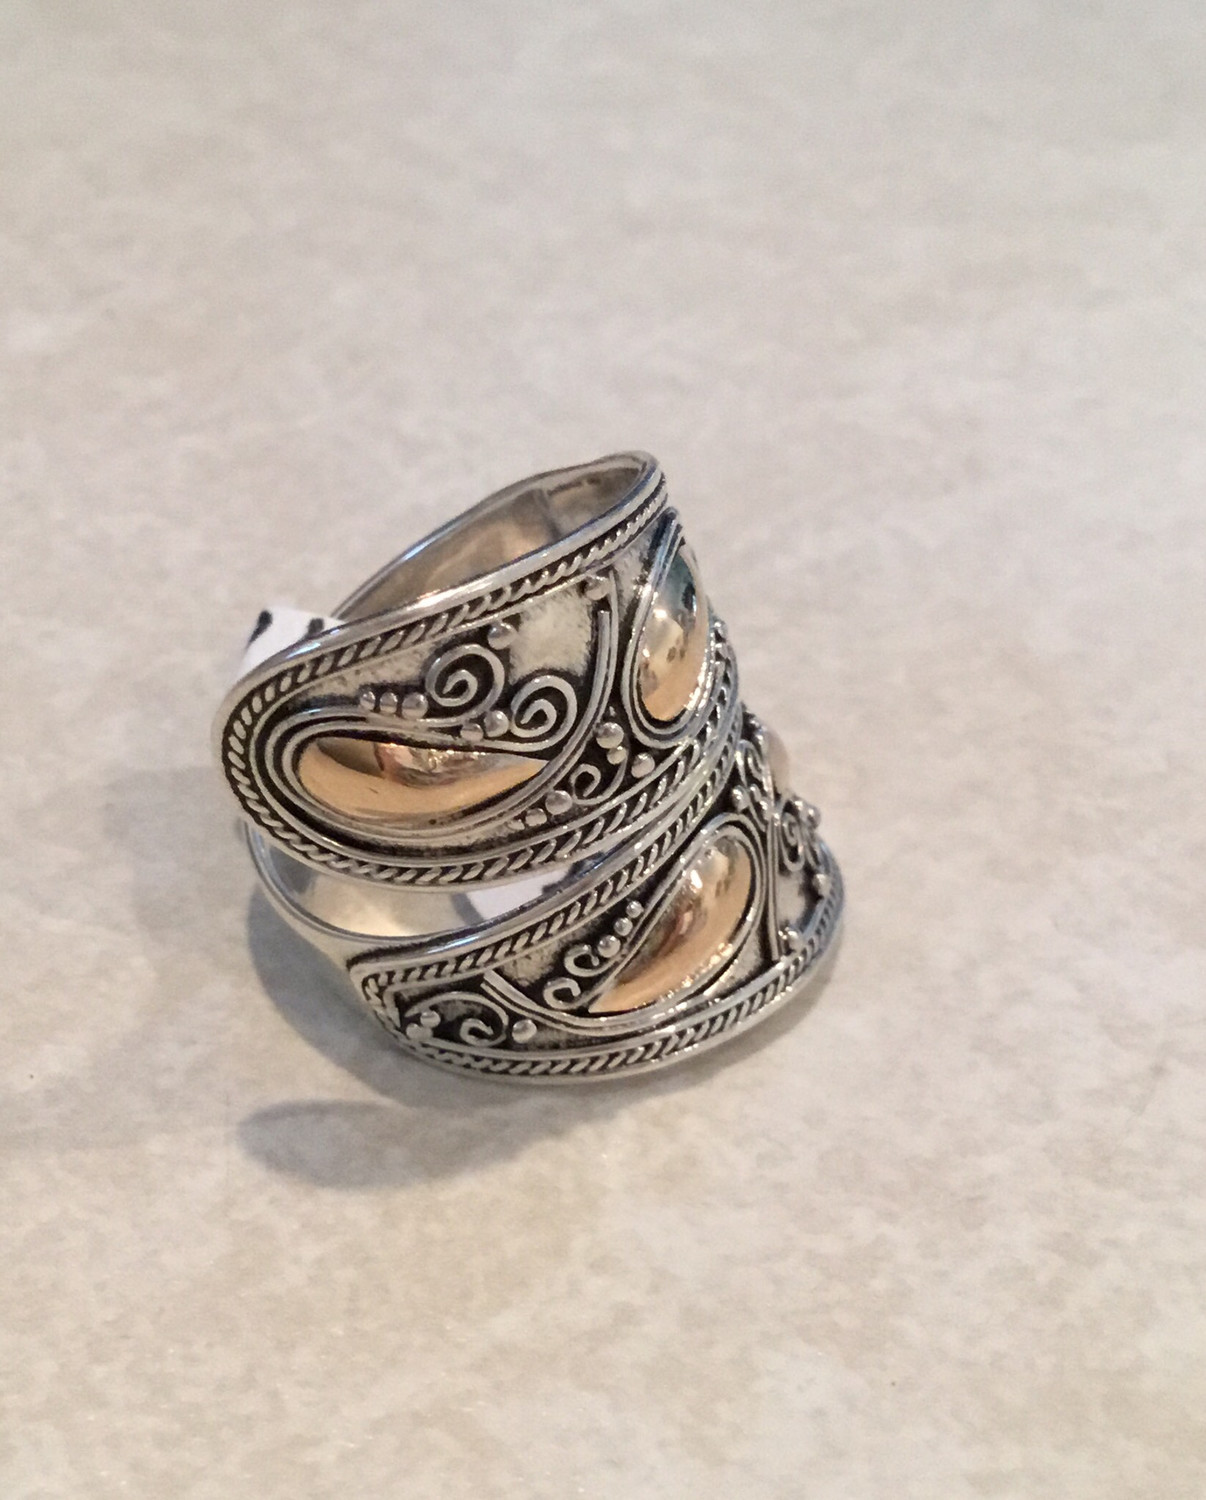 Sterling Silver Spoon Look With Gold Overlay Ring